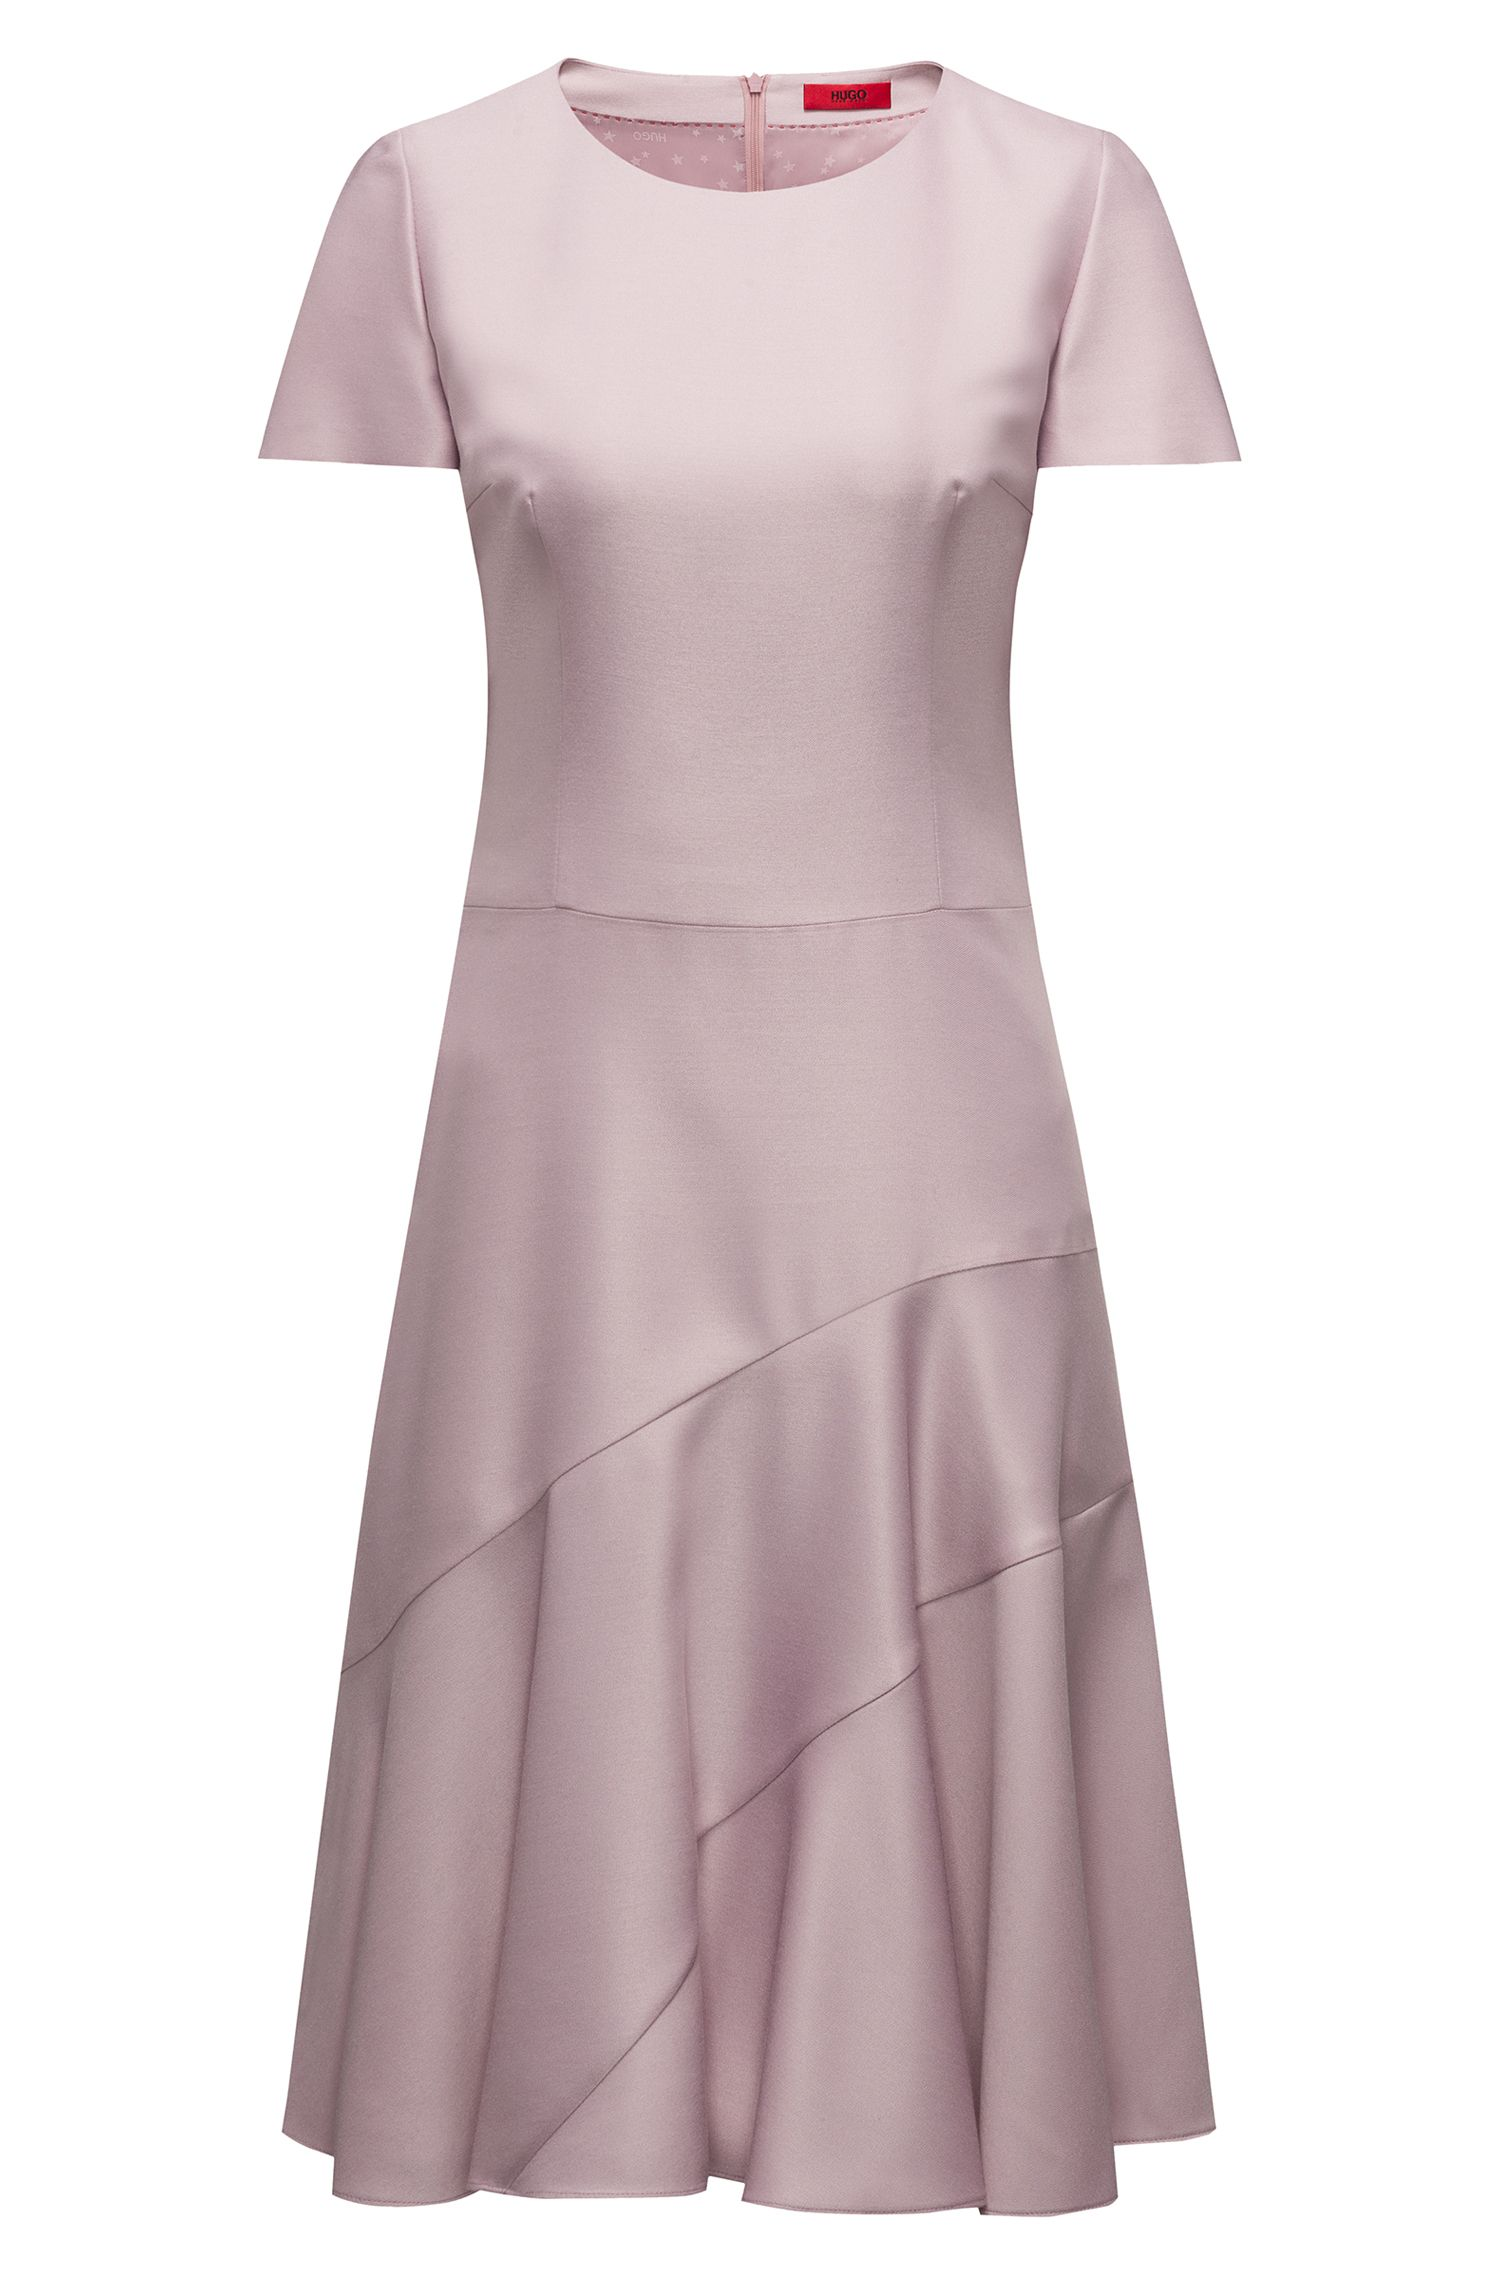 Hugo Boss - Stretch-fabric dress with panelled skirt - 1